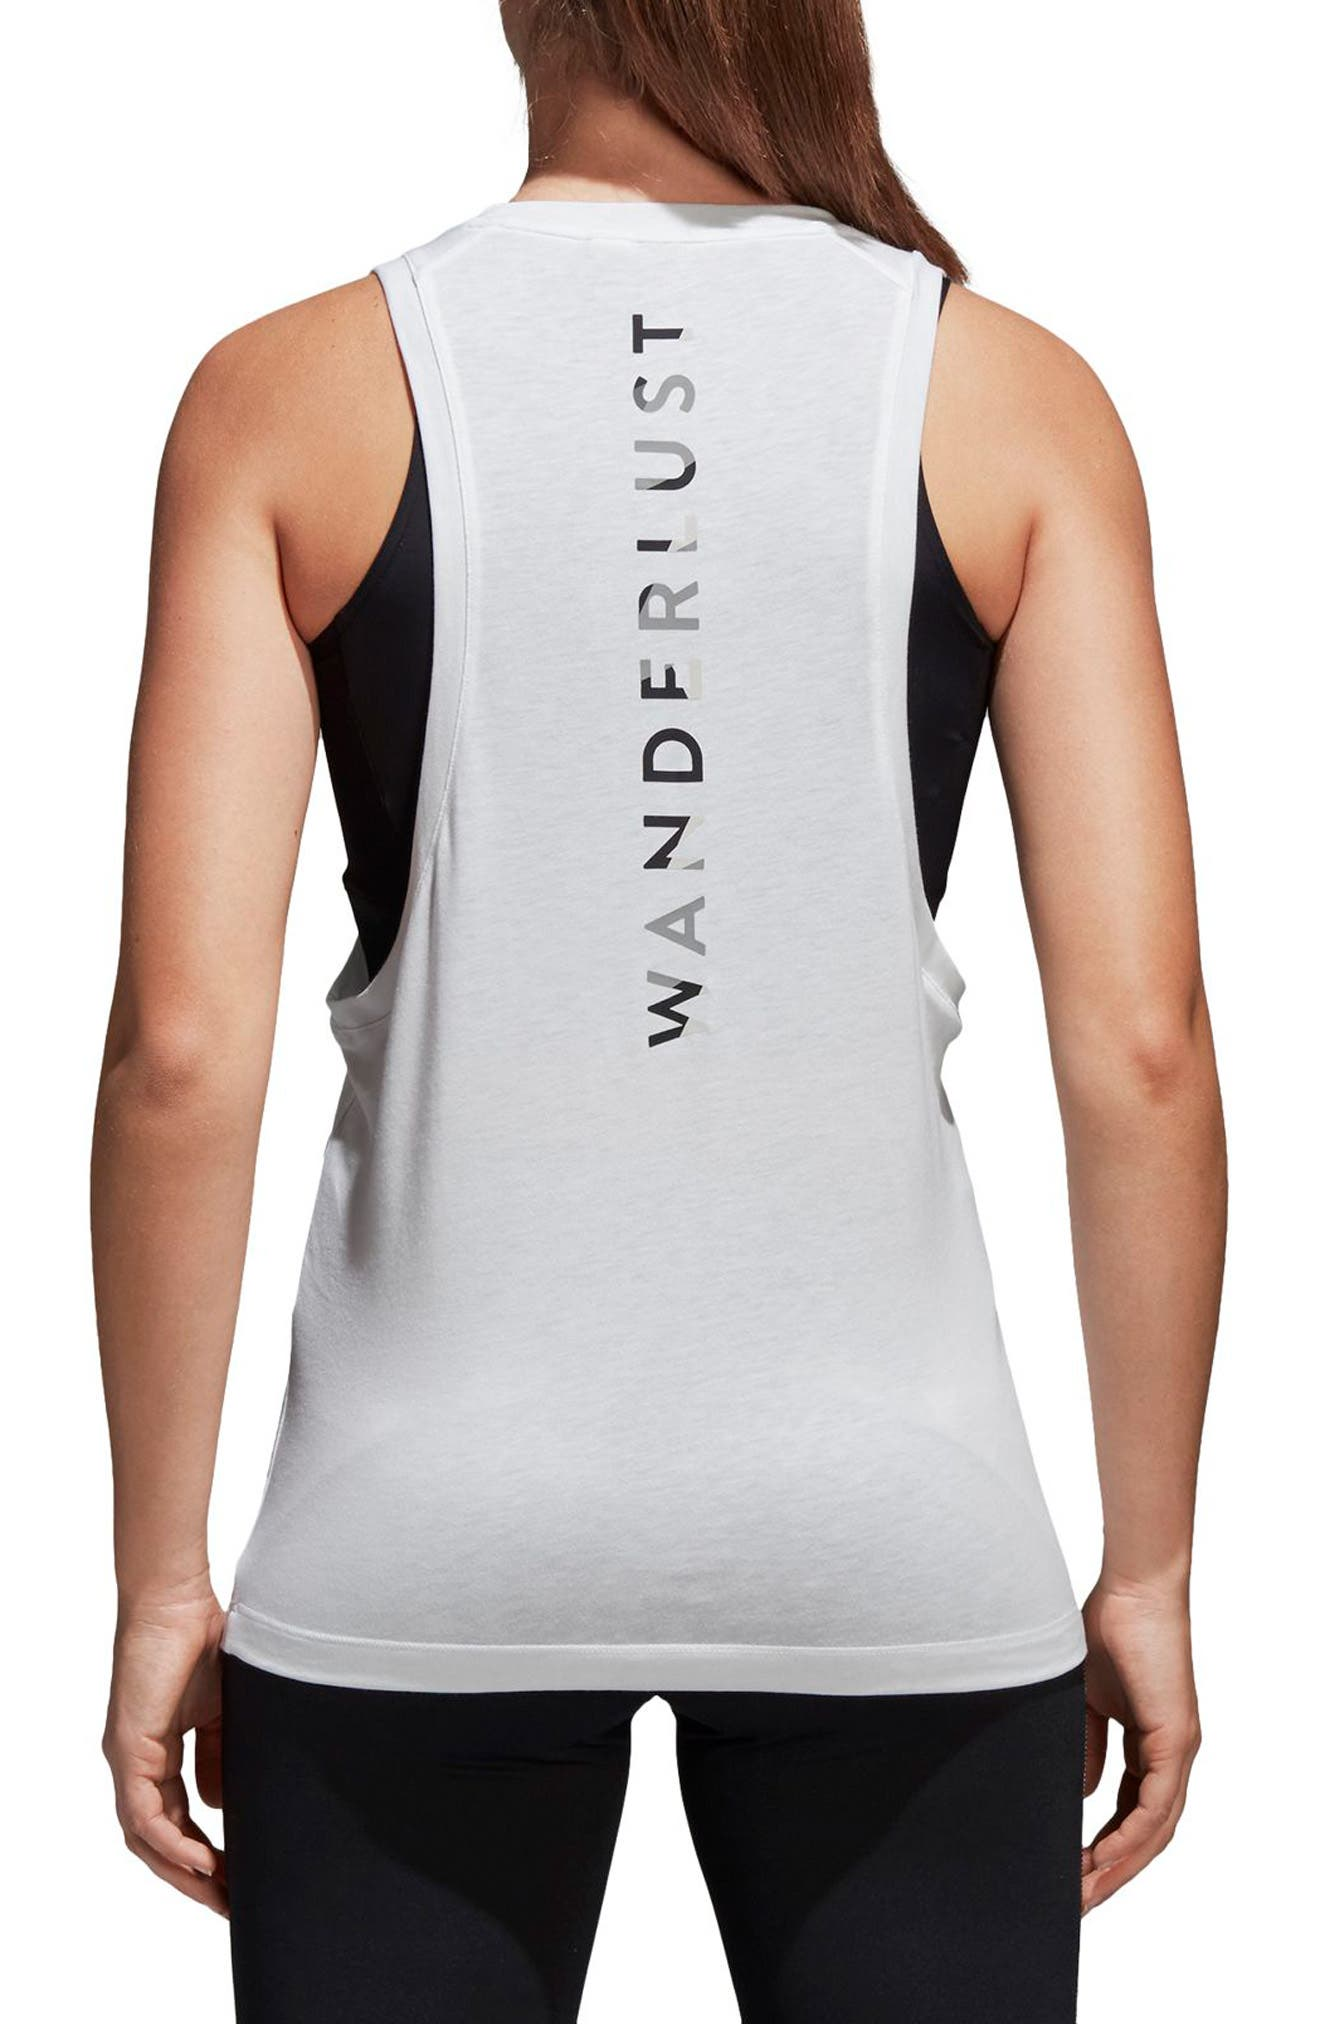 Wanderlust Parley Tank,                             Alternate thumbnail 2, color,                             White